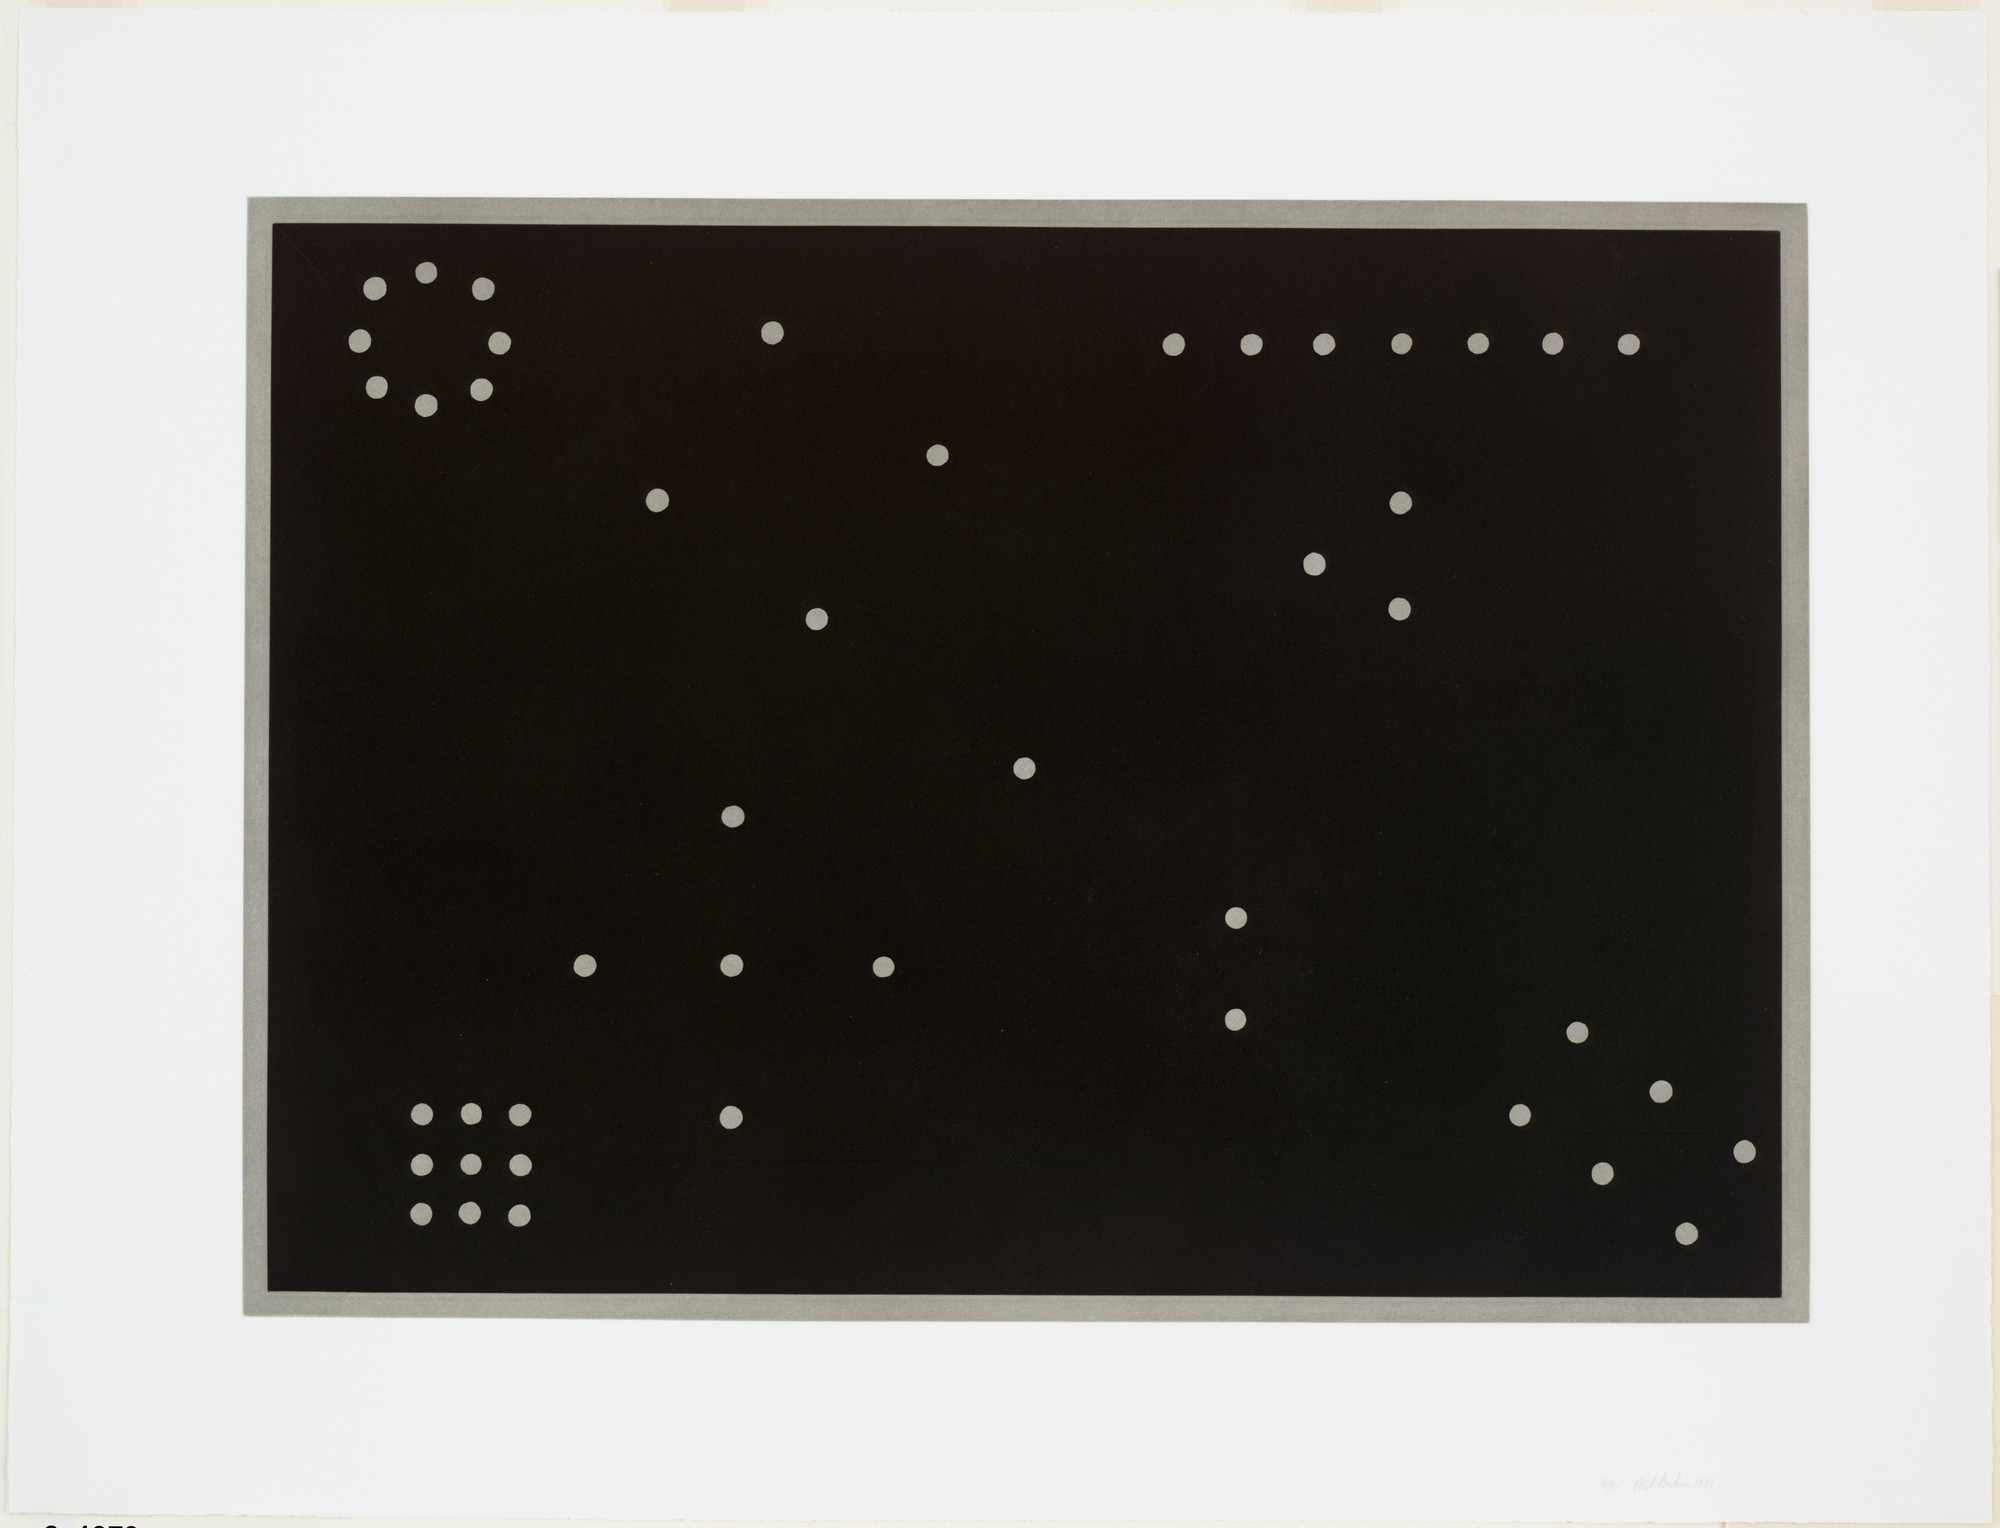 Mel Bochner. Rules of Inference. 1974